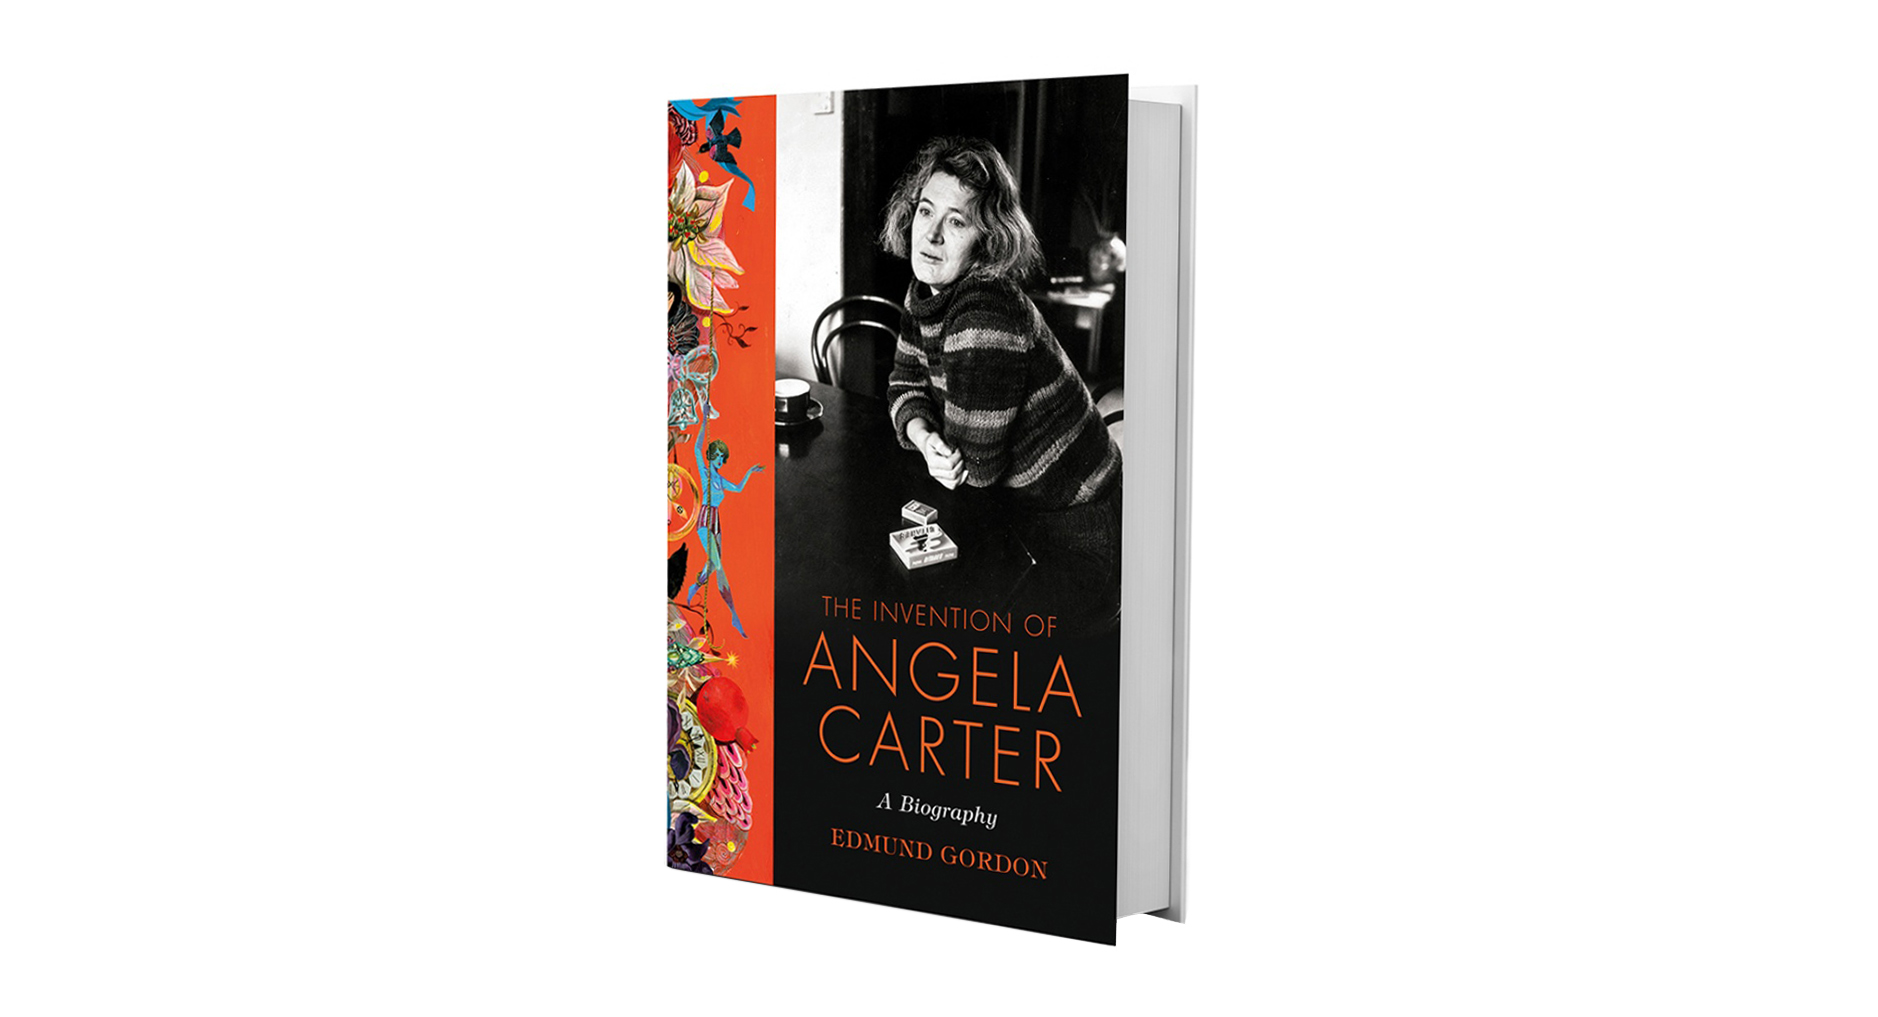 The invention of Angela carter by Edmund Gordon